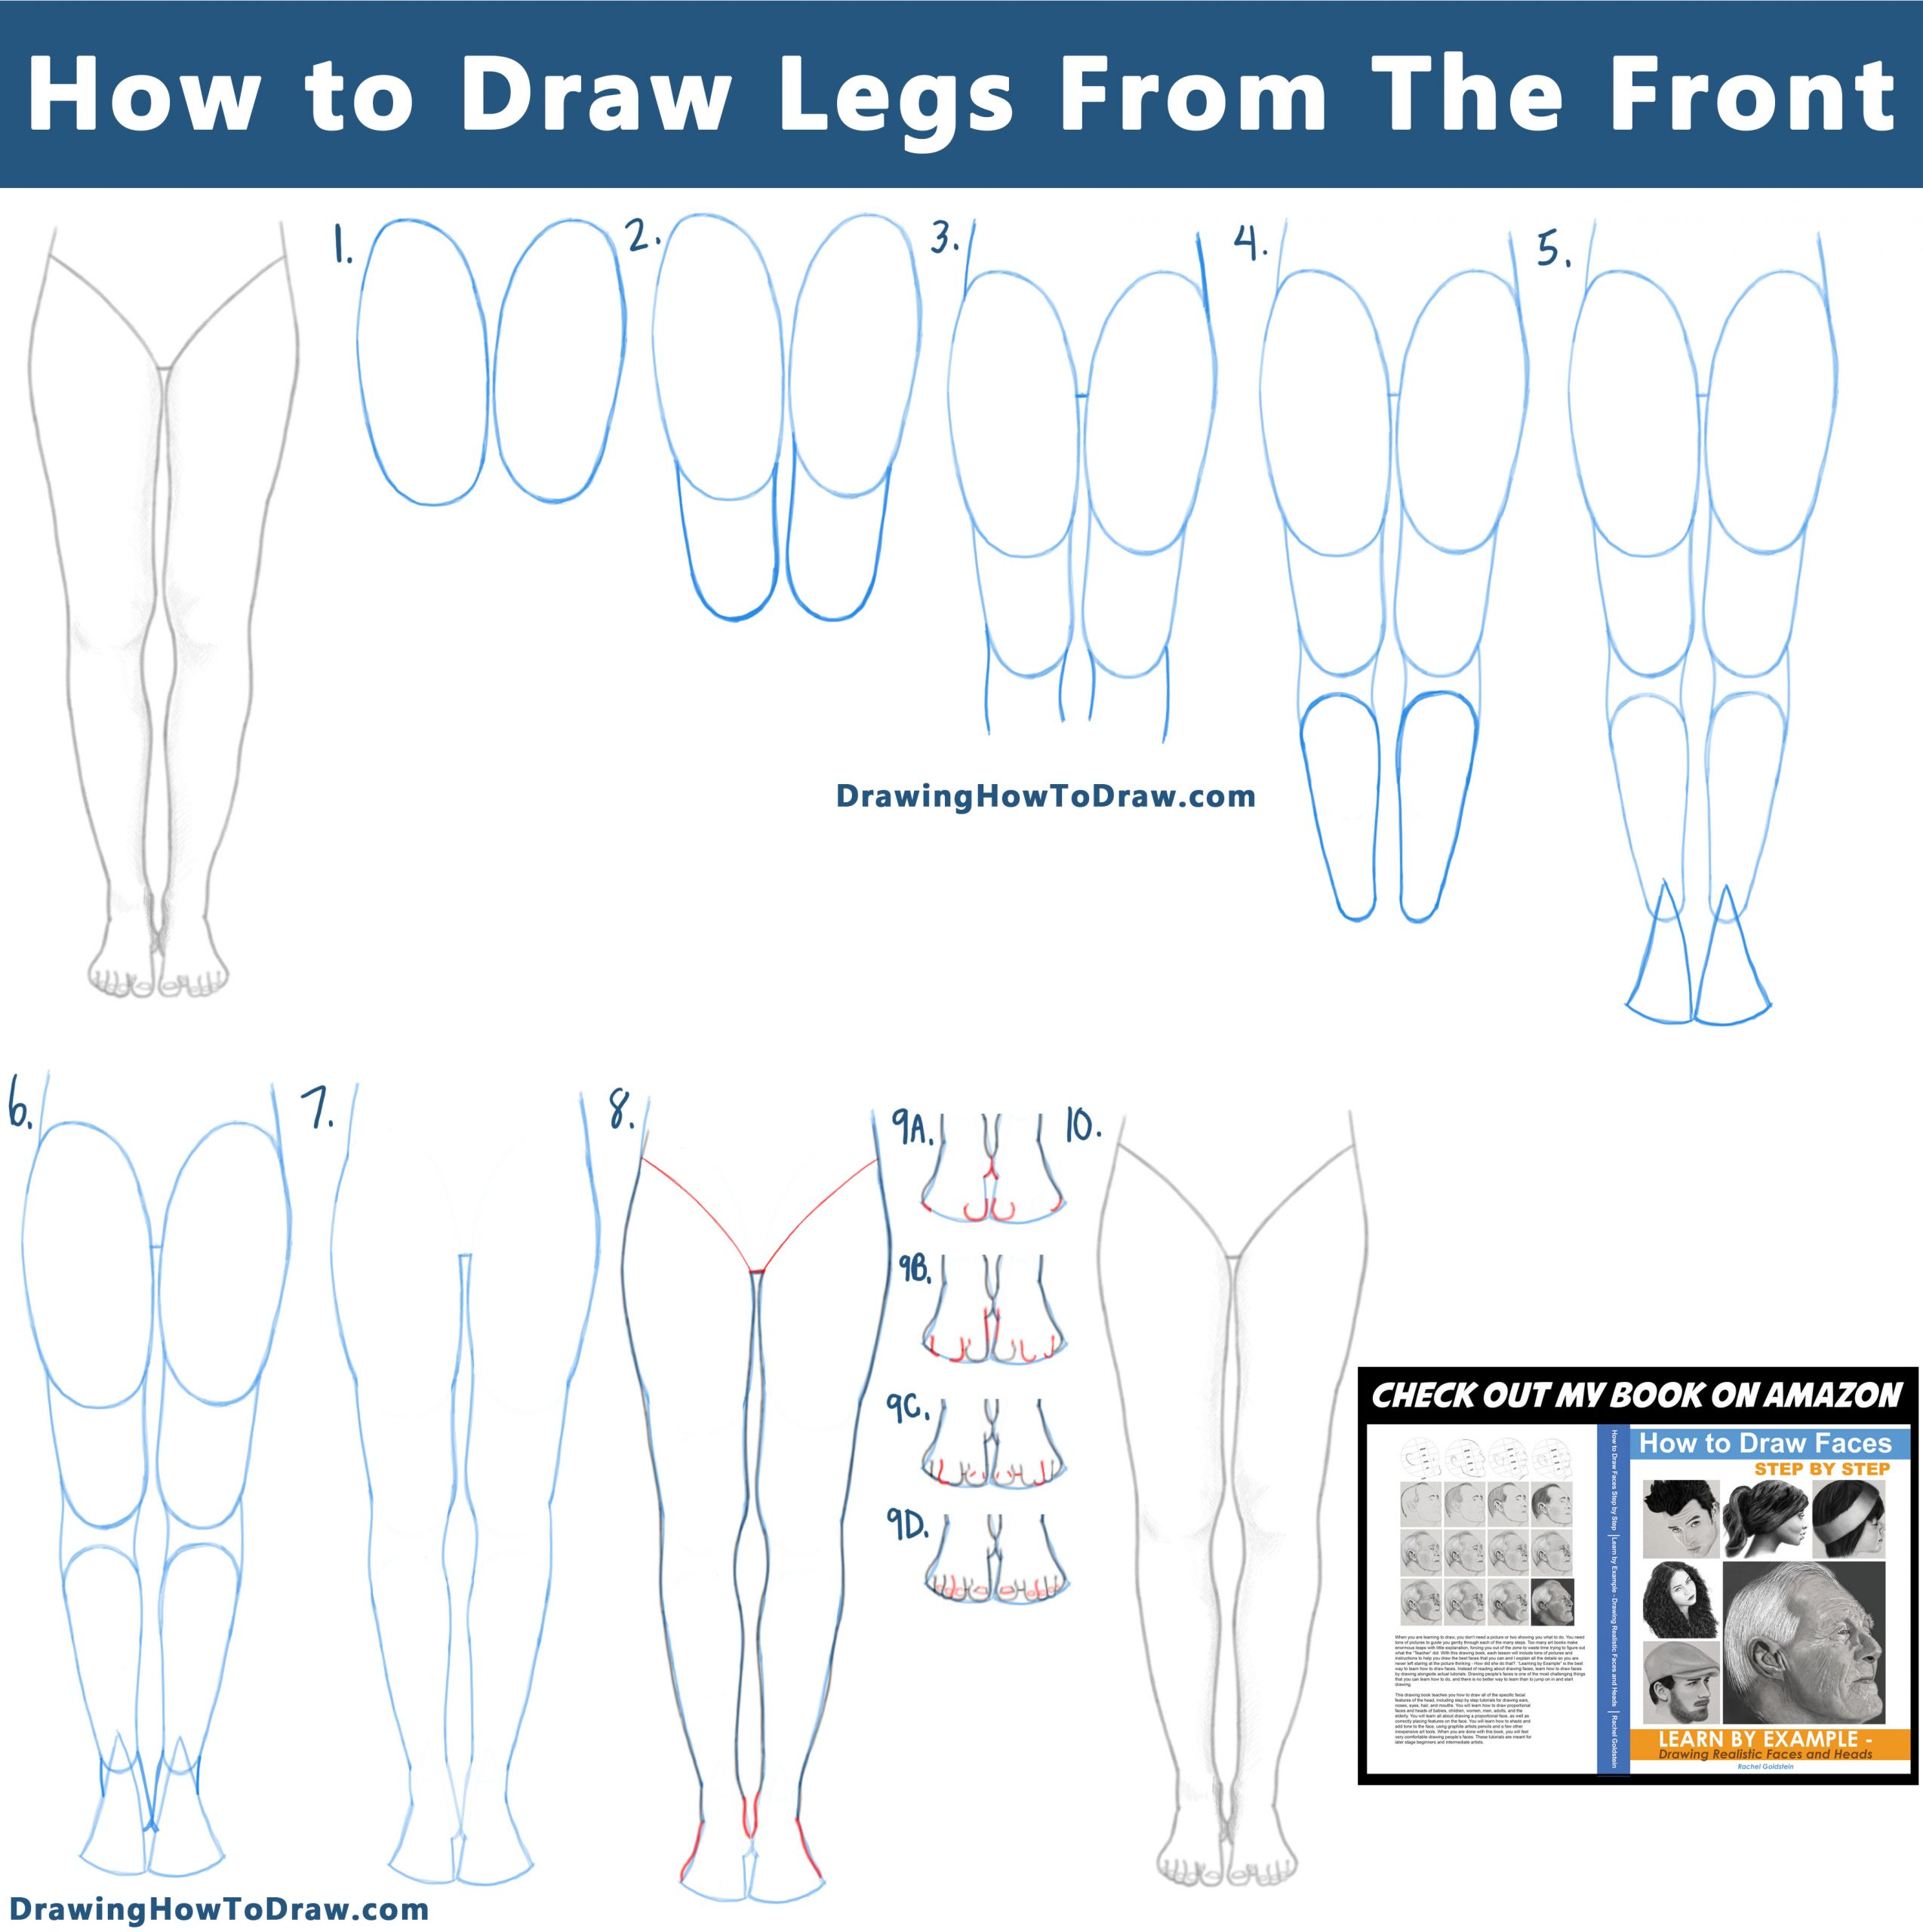 How to Draw Legs / Feet from the Front View